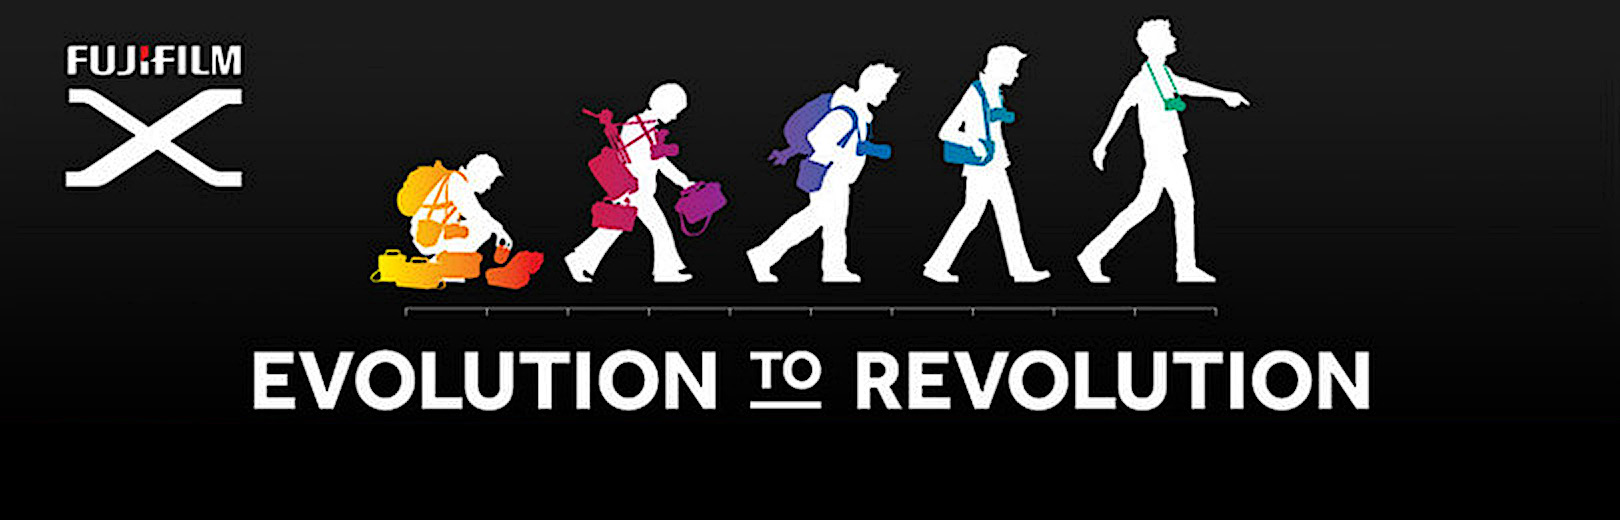 music evolution to devolution Dragon ball z devolution baston 474 likes 2 talking about this mi pagina se treta de editar personajes jump to sections of this page documents, music.